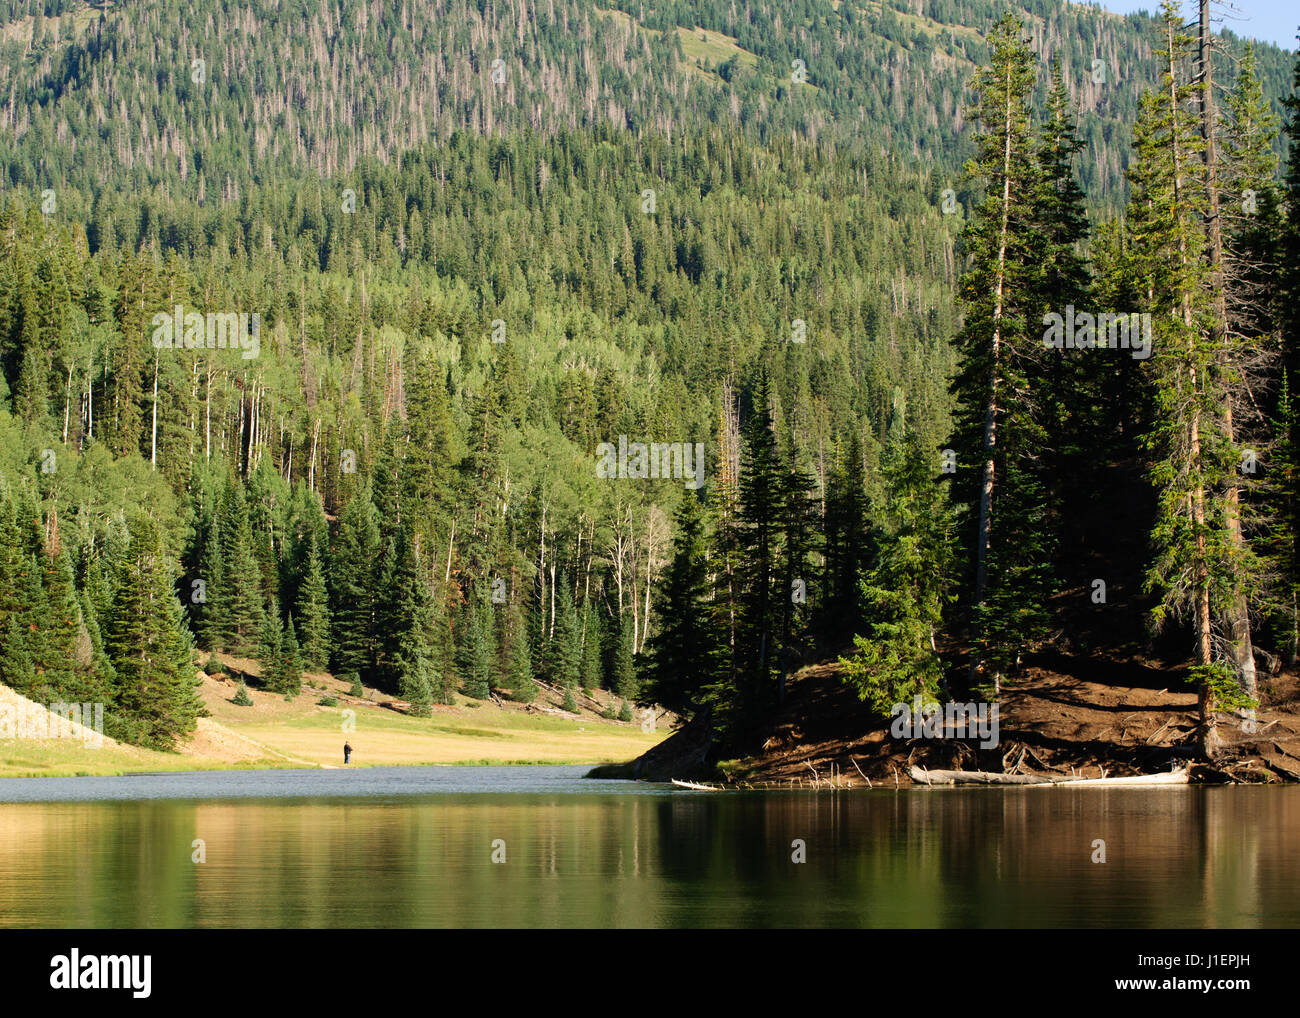 Man fishing at Anderson Meadow reservoir in Utah surrounded by thick forest. - Stock Image